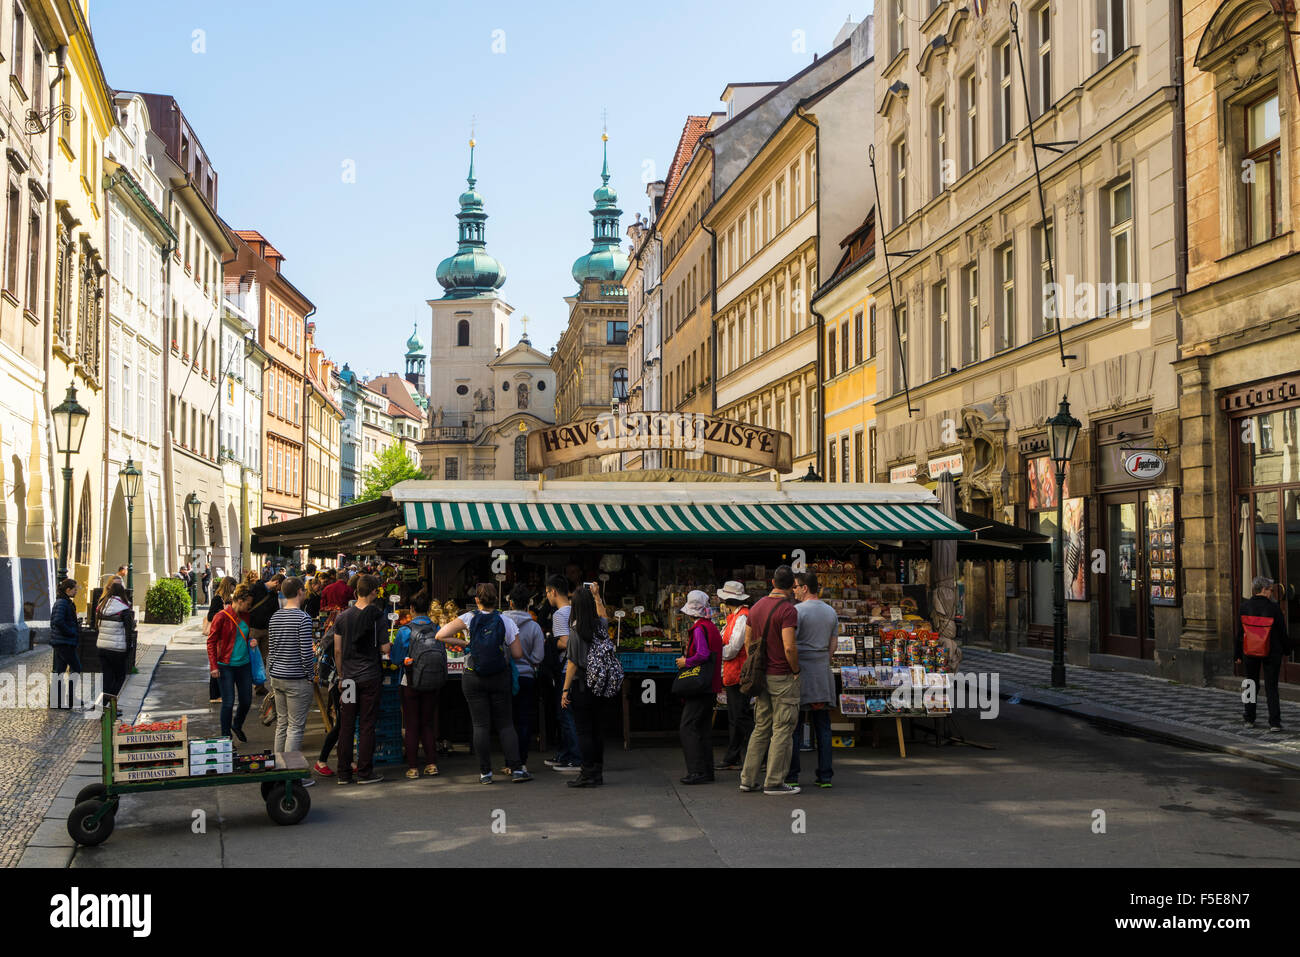 Havelsky Trziste is the Old Town's largest outdoor market in front of St. Havel Church, Prague, Czech Republic, - Stock Image